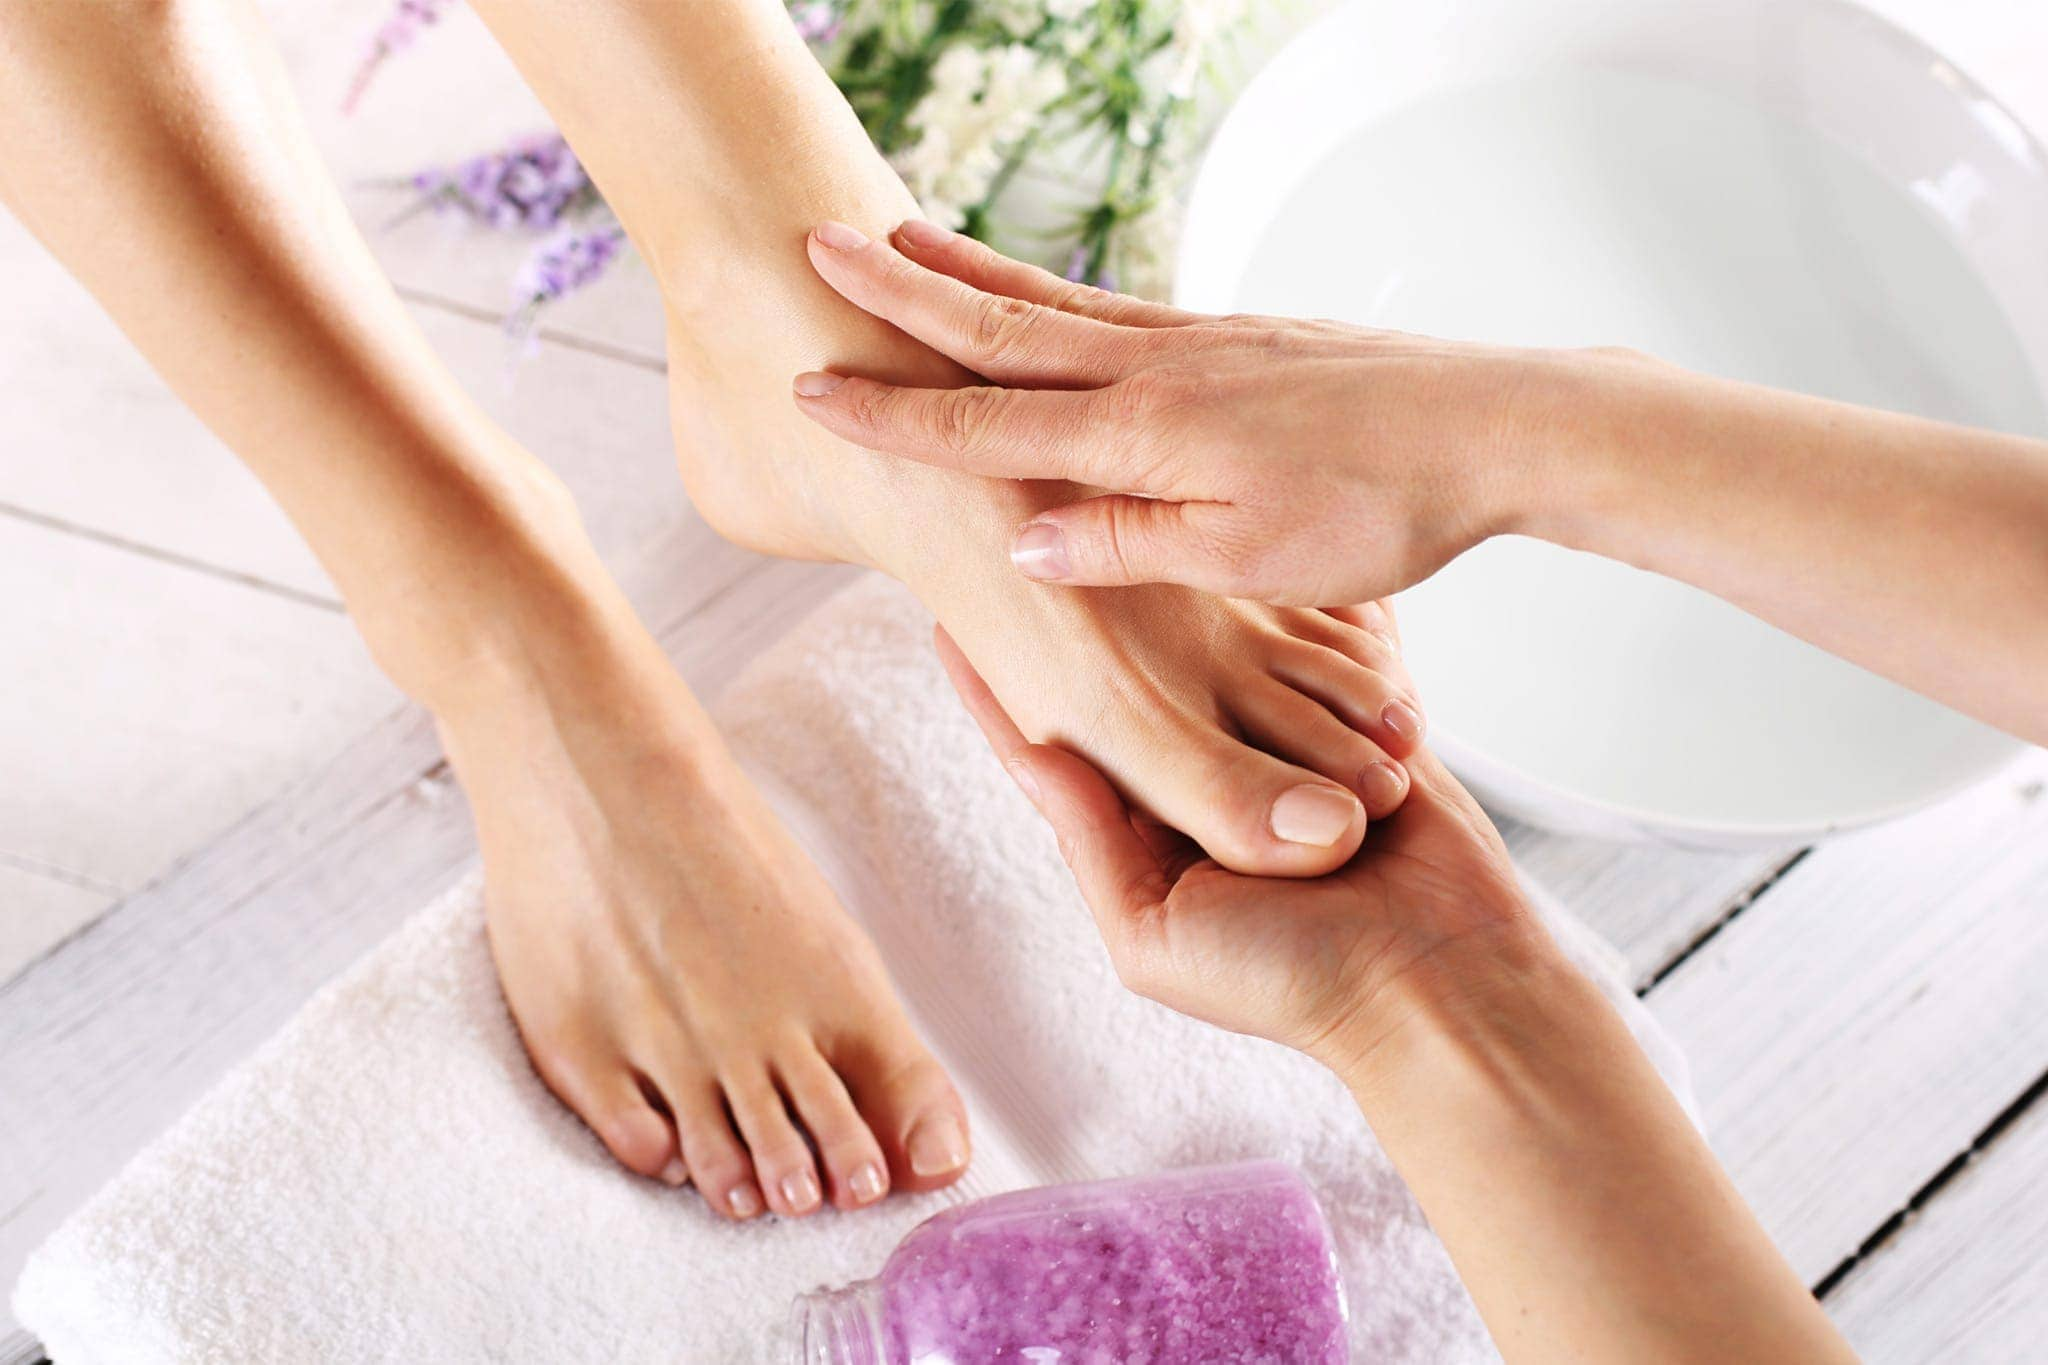 Pedicure Salon Pedicure Headliners Salon Spa